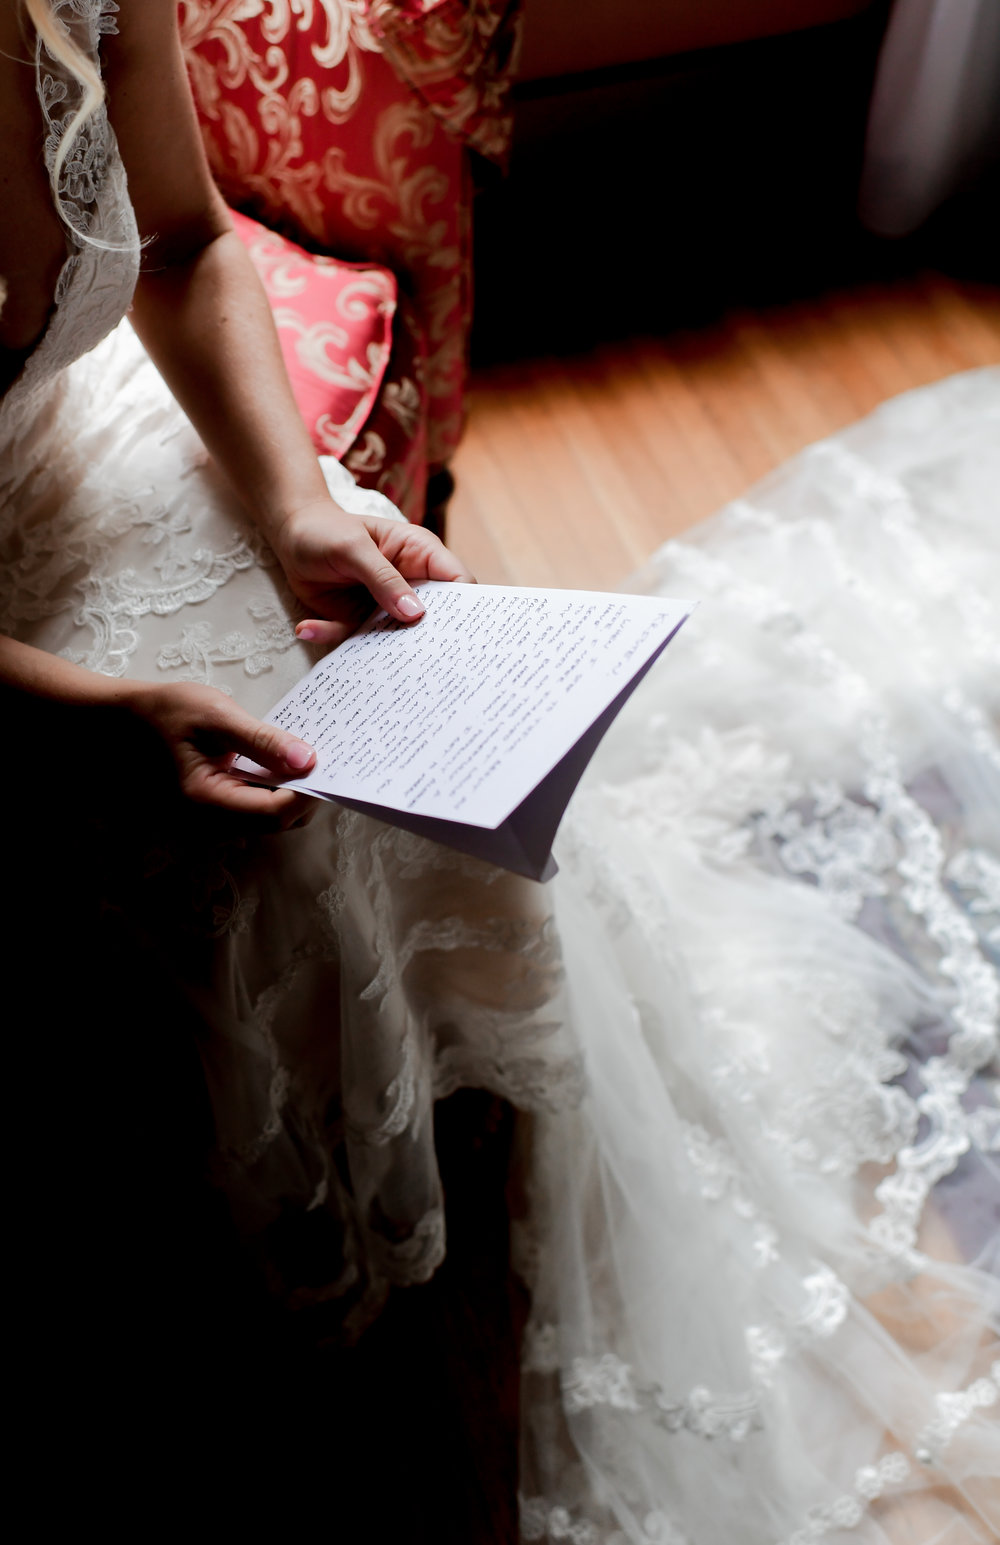 Bride reading letting from groom at Buffalo, NY wedding planned by Exhale Events. Find more wedding inspiration at exhale-events.com!